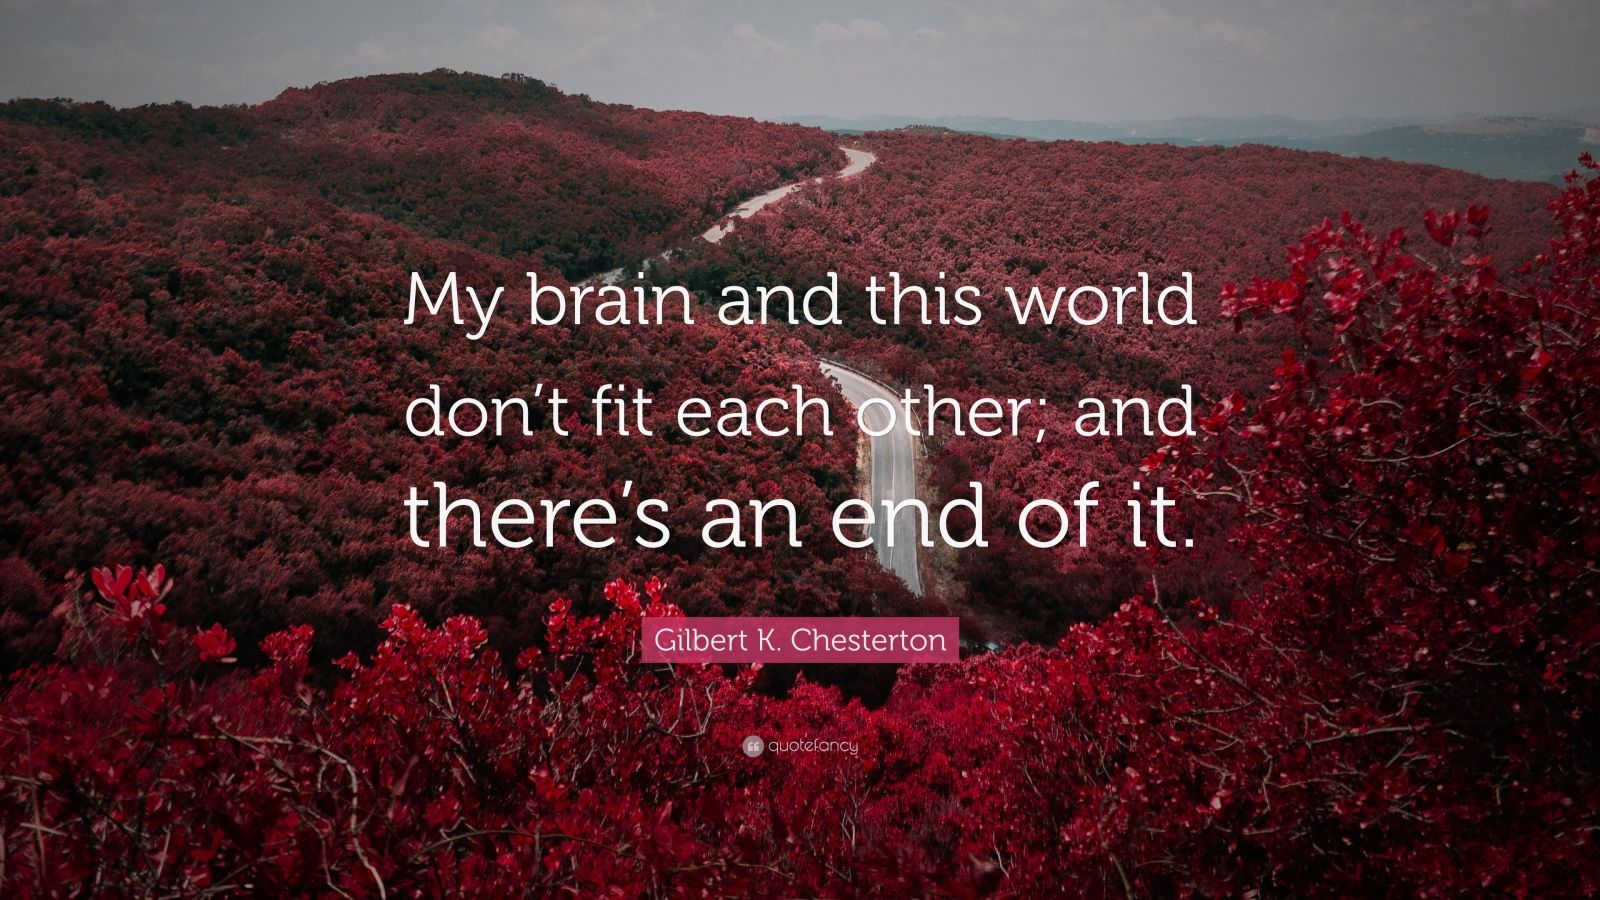 """Gilbert K. Chesterton Quote: """"My brain and this world don't fit each other; and there's an end of it."""""""